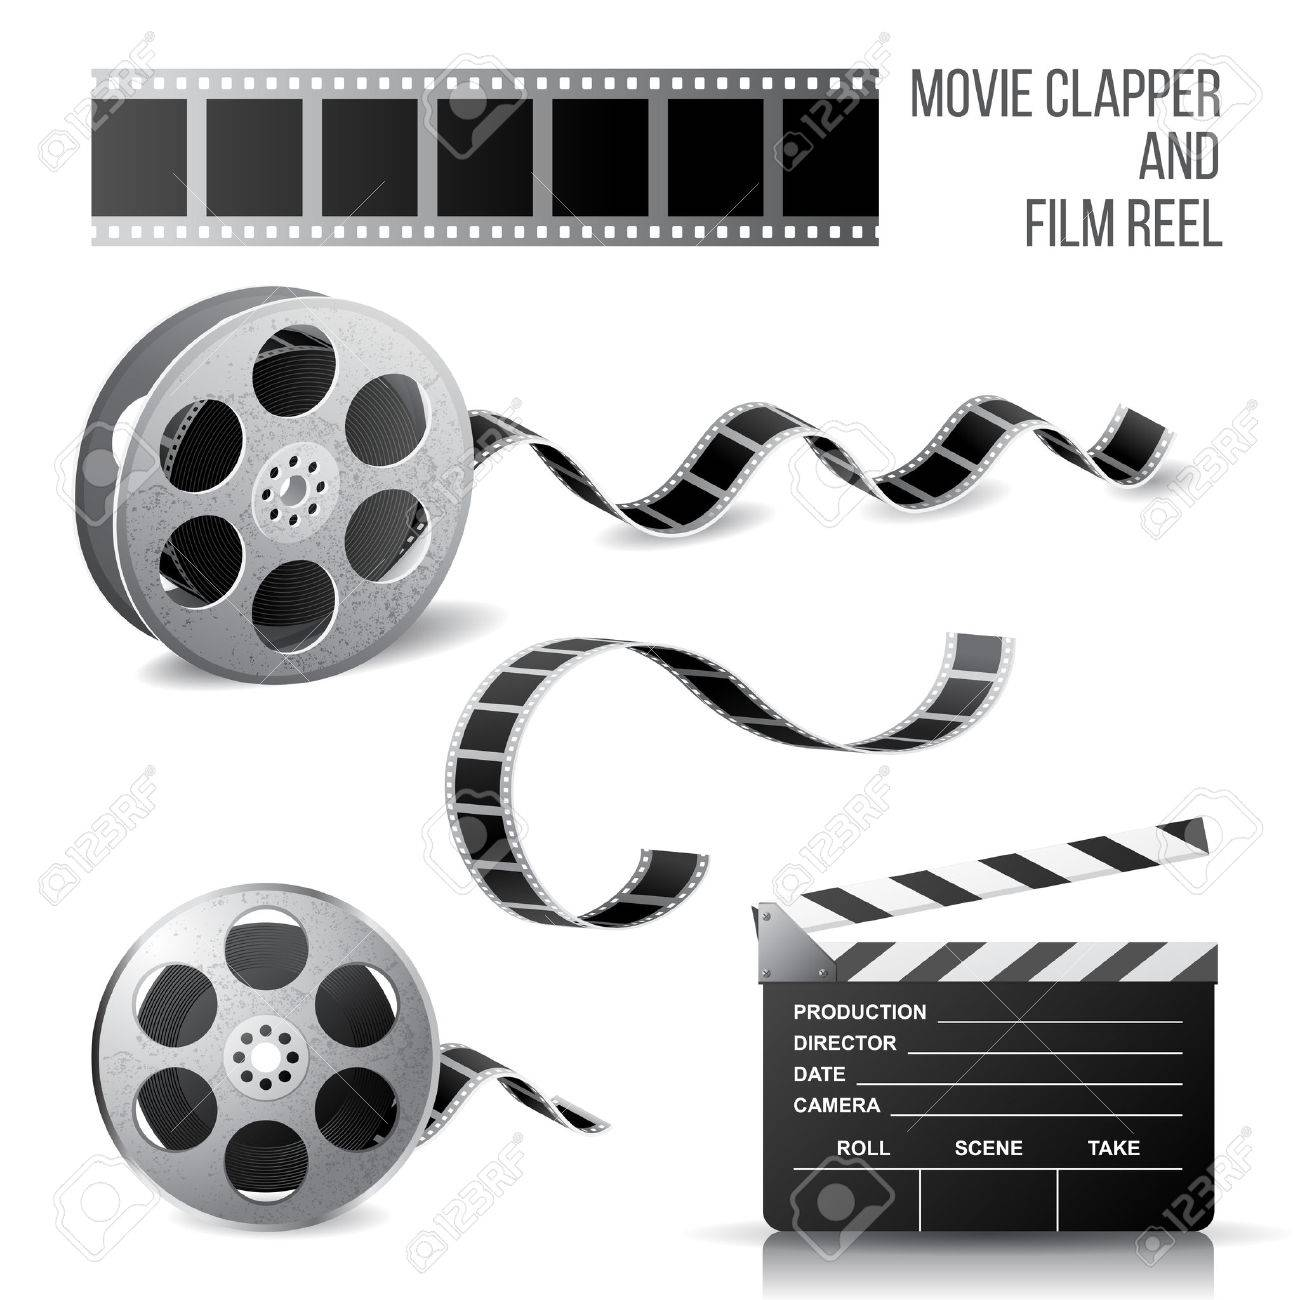 Movie Clapper And Film Reel Over White Background Royalty Free